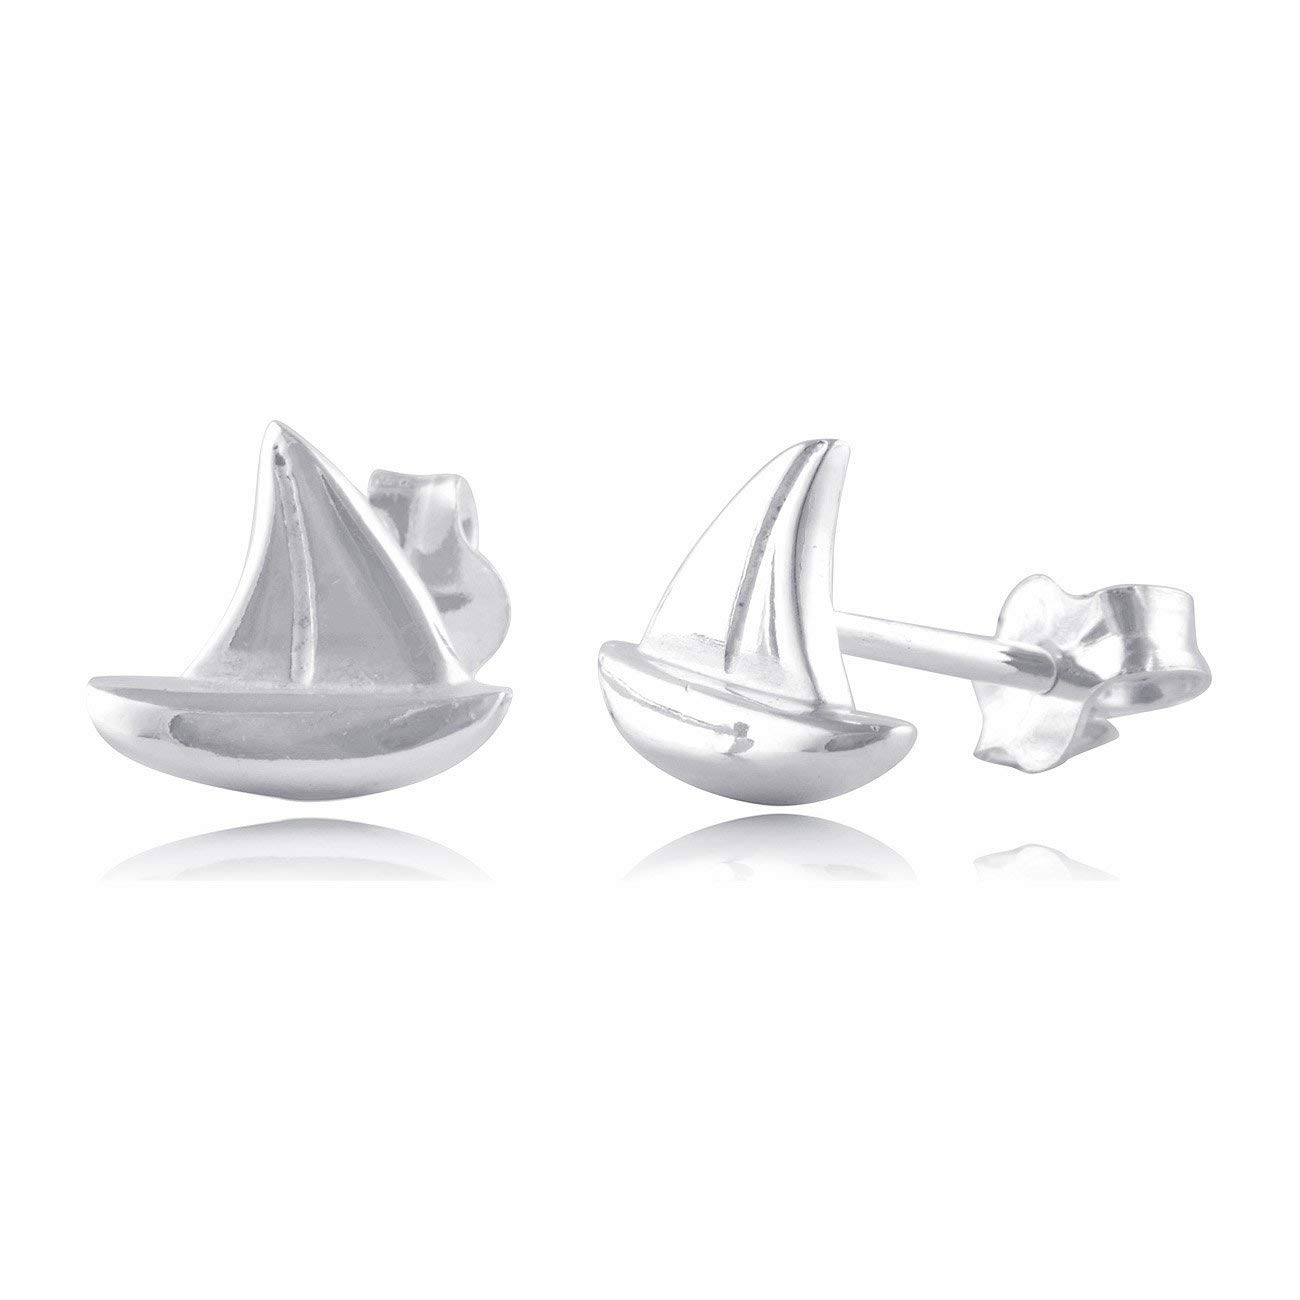 9d886fb60 Cheap Sterling Sailboat, find Sterling Sailboat deals on line at ...